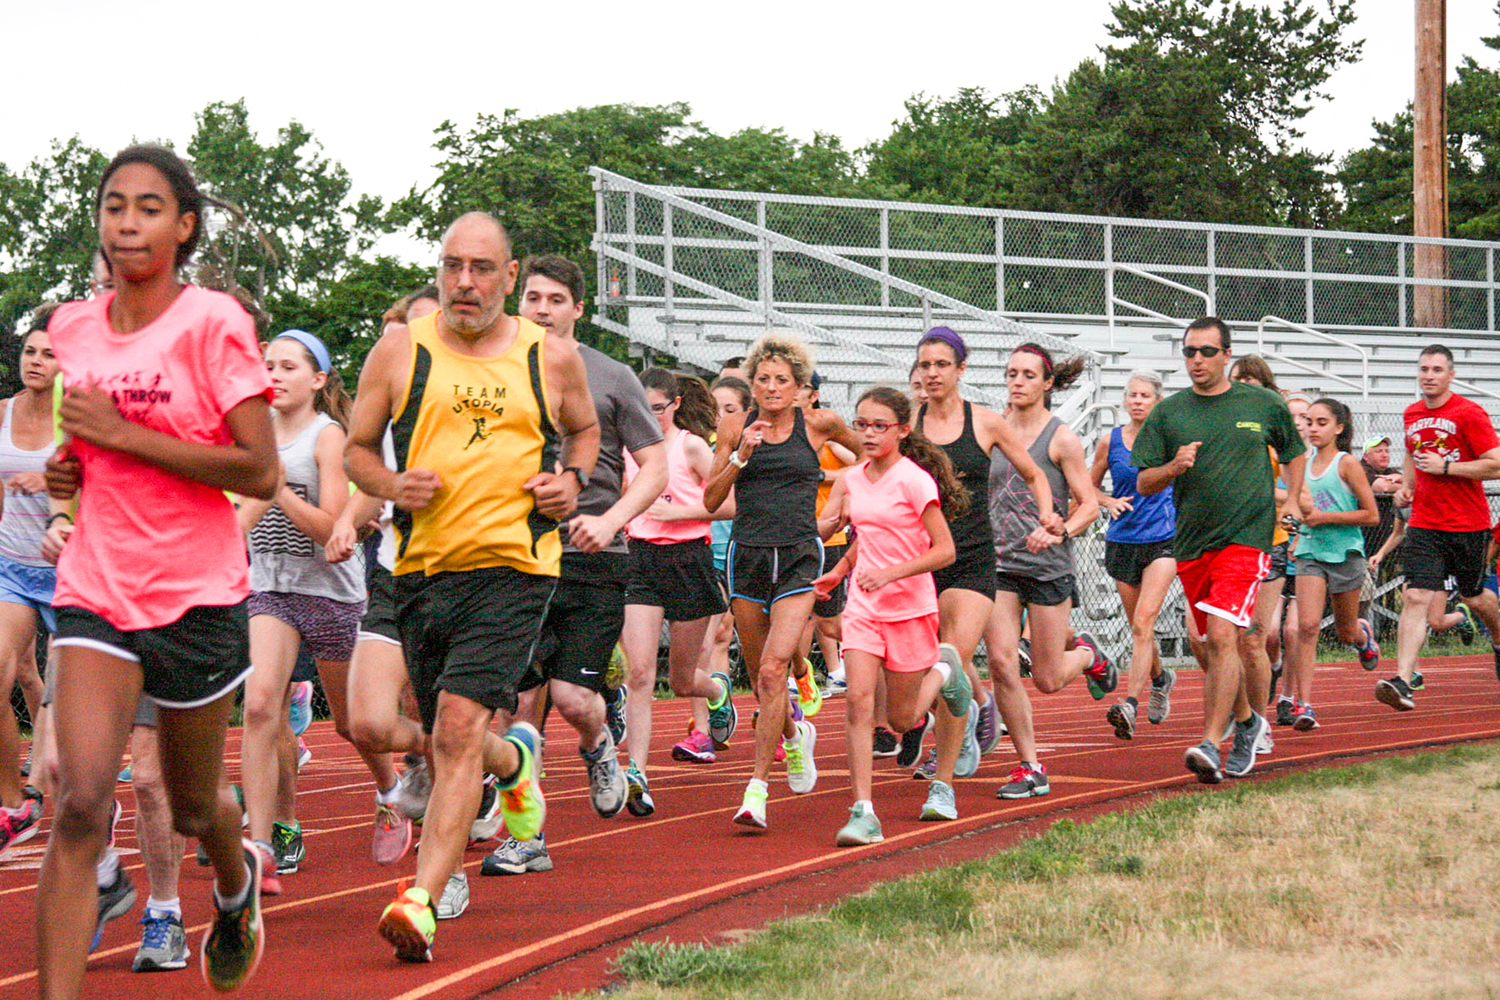 Start of 2016 Colonie Mile at Colonie High School track.   Bill Meehan/HMRRC